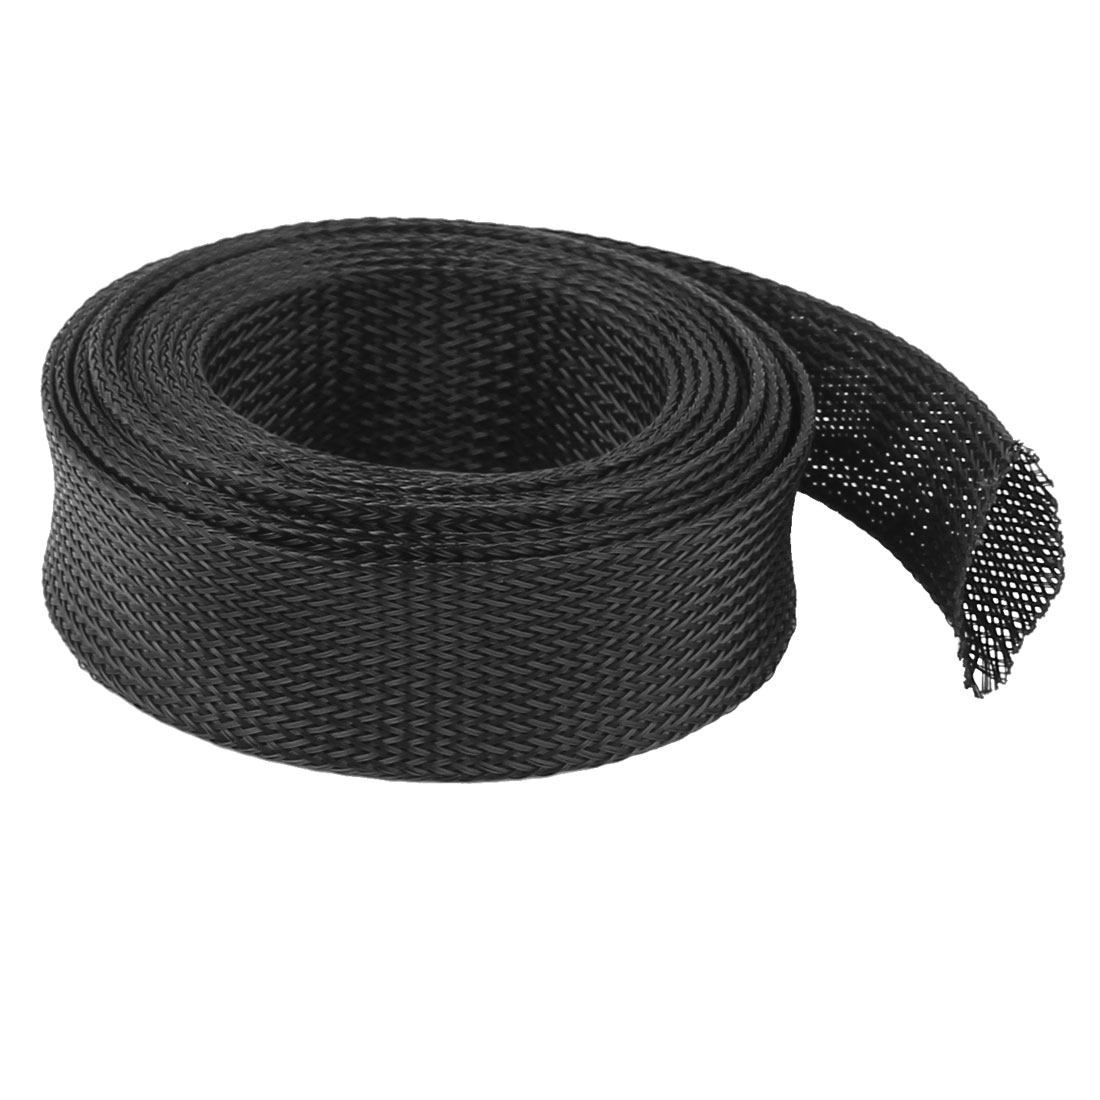 32mm PET Cable Wire Wrap Expandable Braided Sleeving 3 Meter